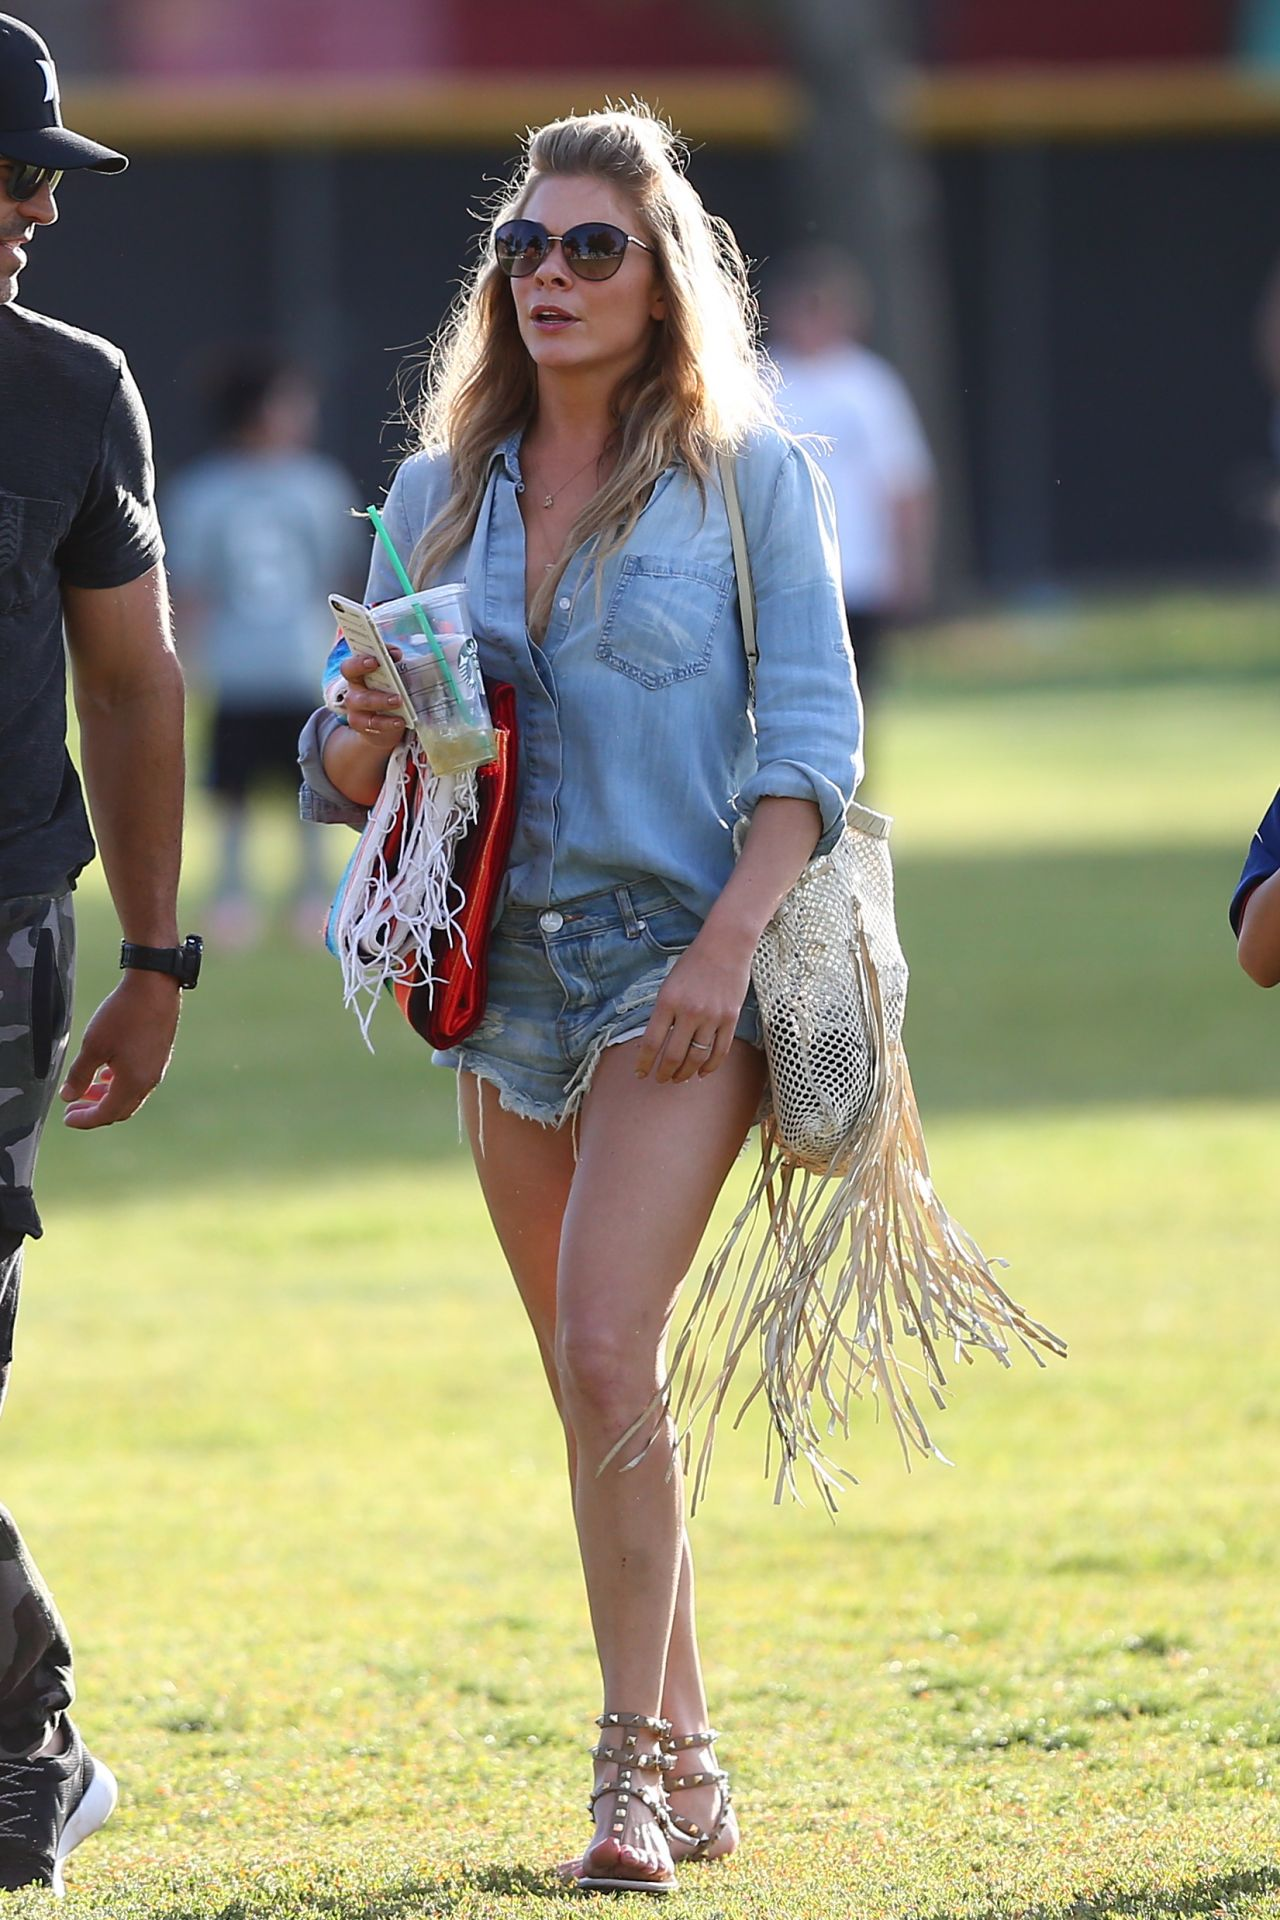 LeAnn Rimes in Denim Shorts - at Her Sons Soccer Game in Los Angeles